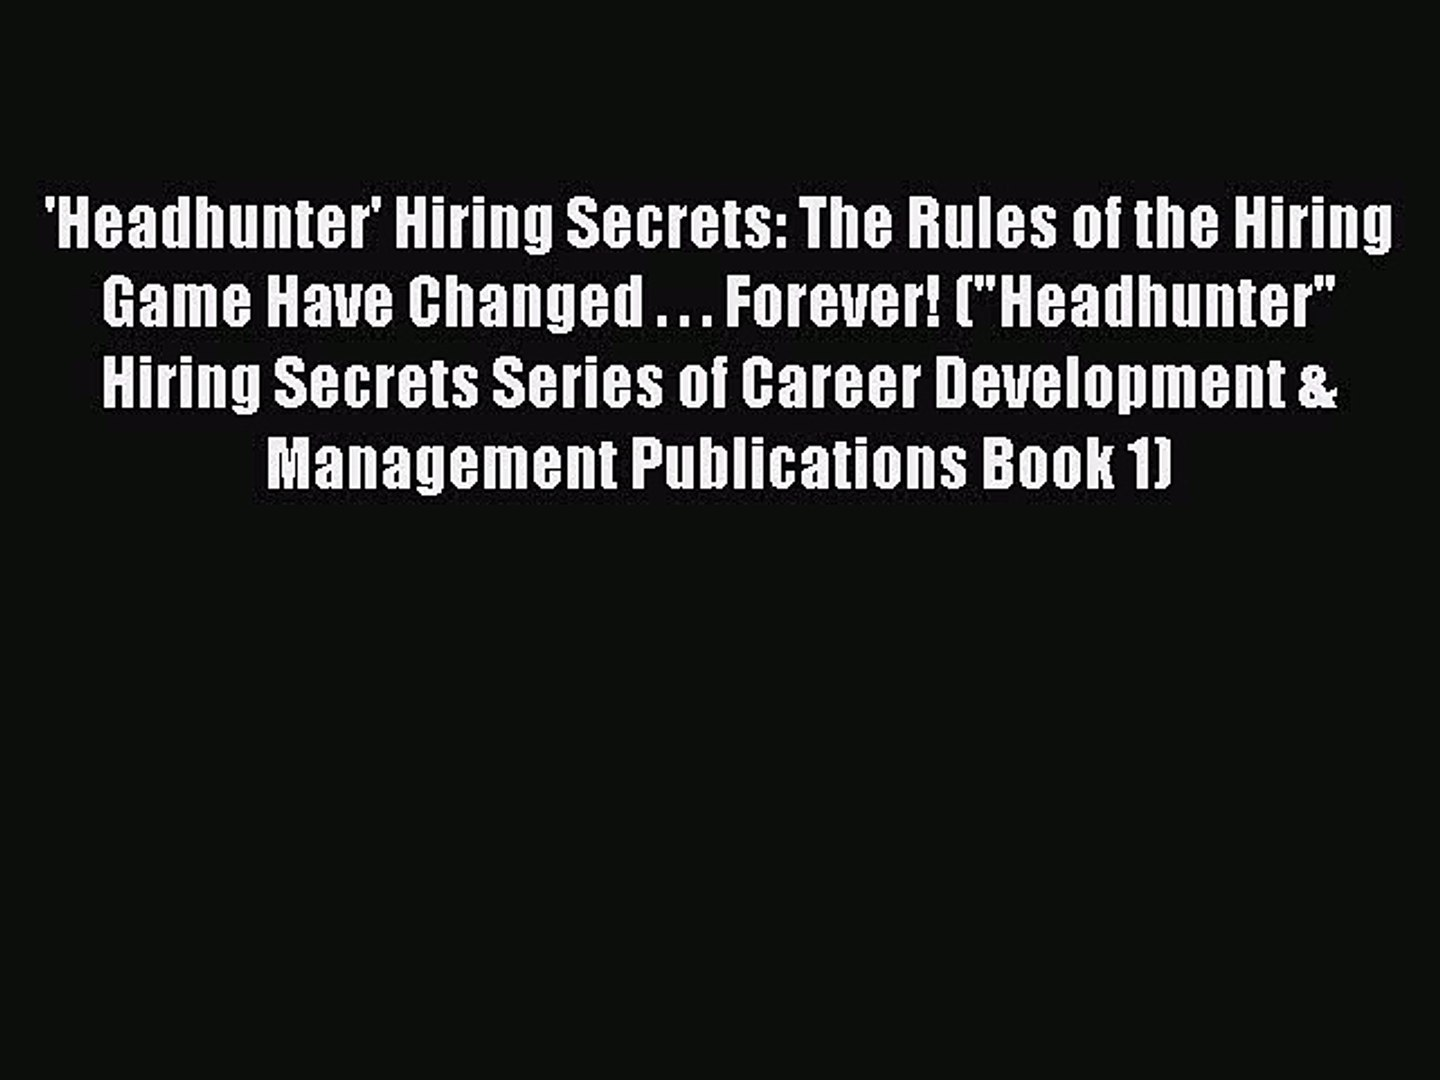 Headhunter Hiring Secrets: The Rules of the Hiring Game Have Changed . . . Forever!